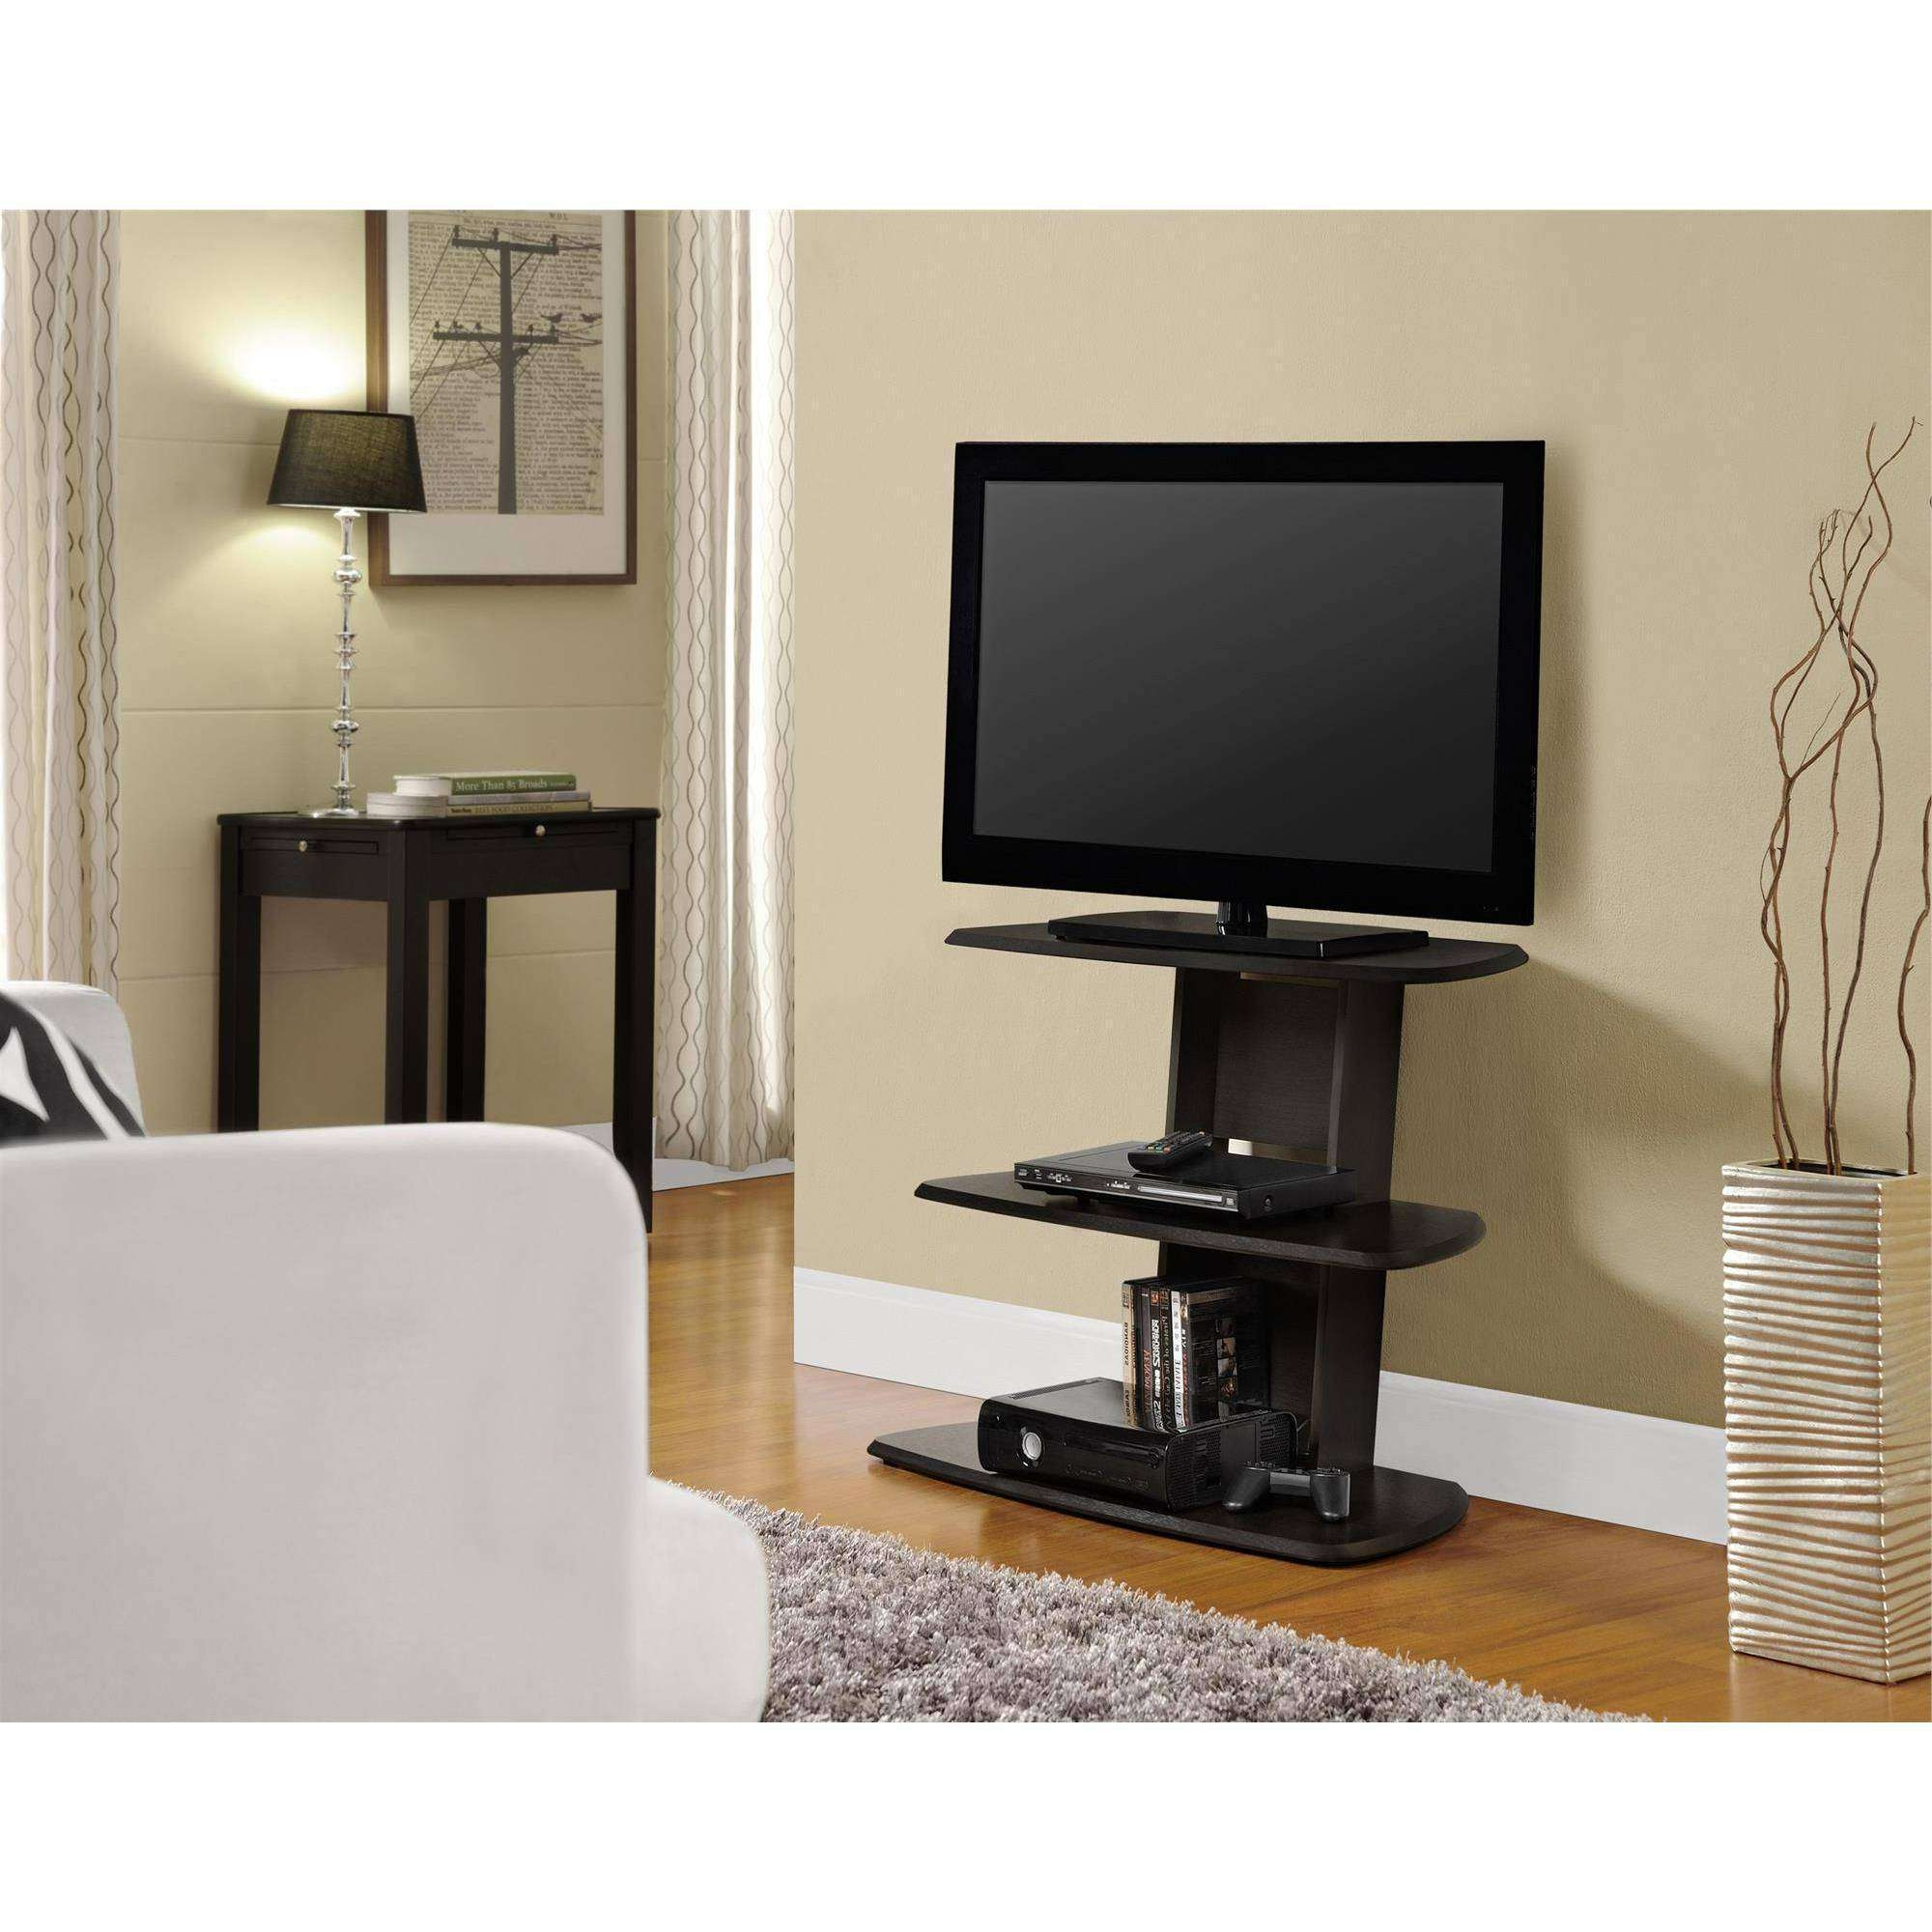 32 Inch Tv Stands Within 24 Inch Led Tv Stands (View 6 of 15)